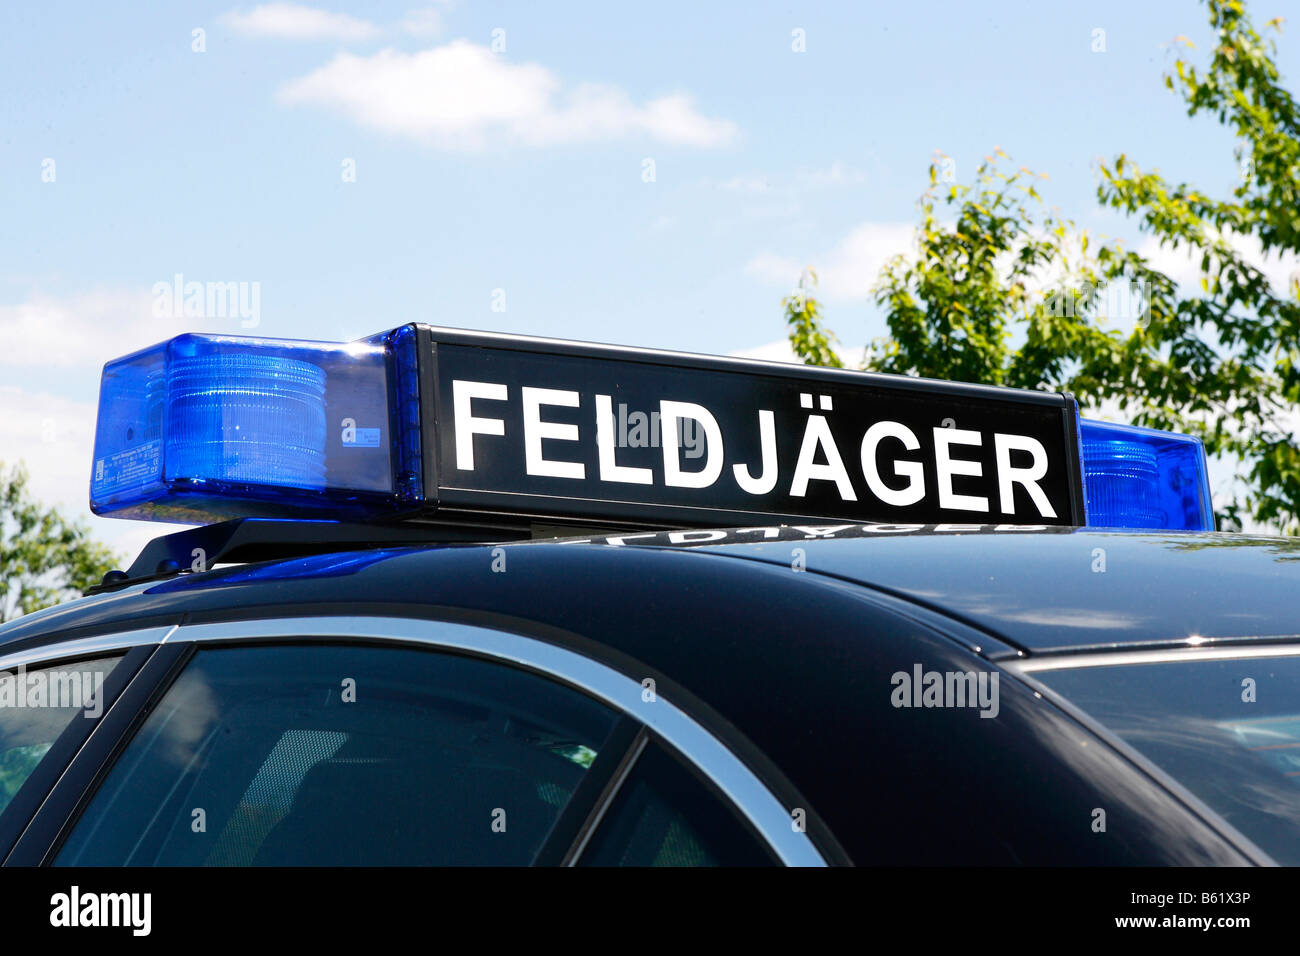 Sign on a car roof, Feldjaeger, German military police - Stock Image